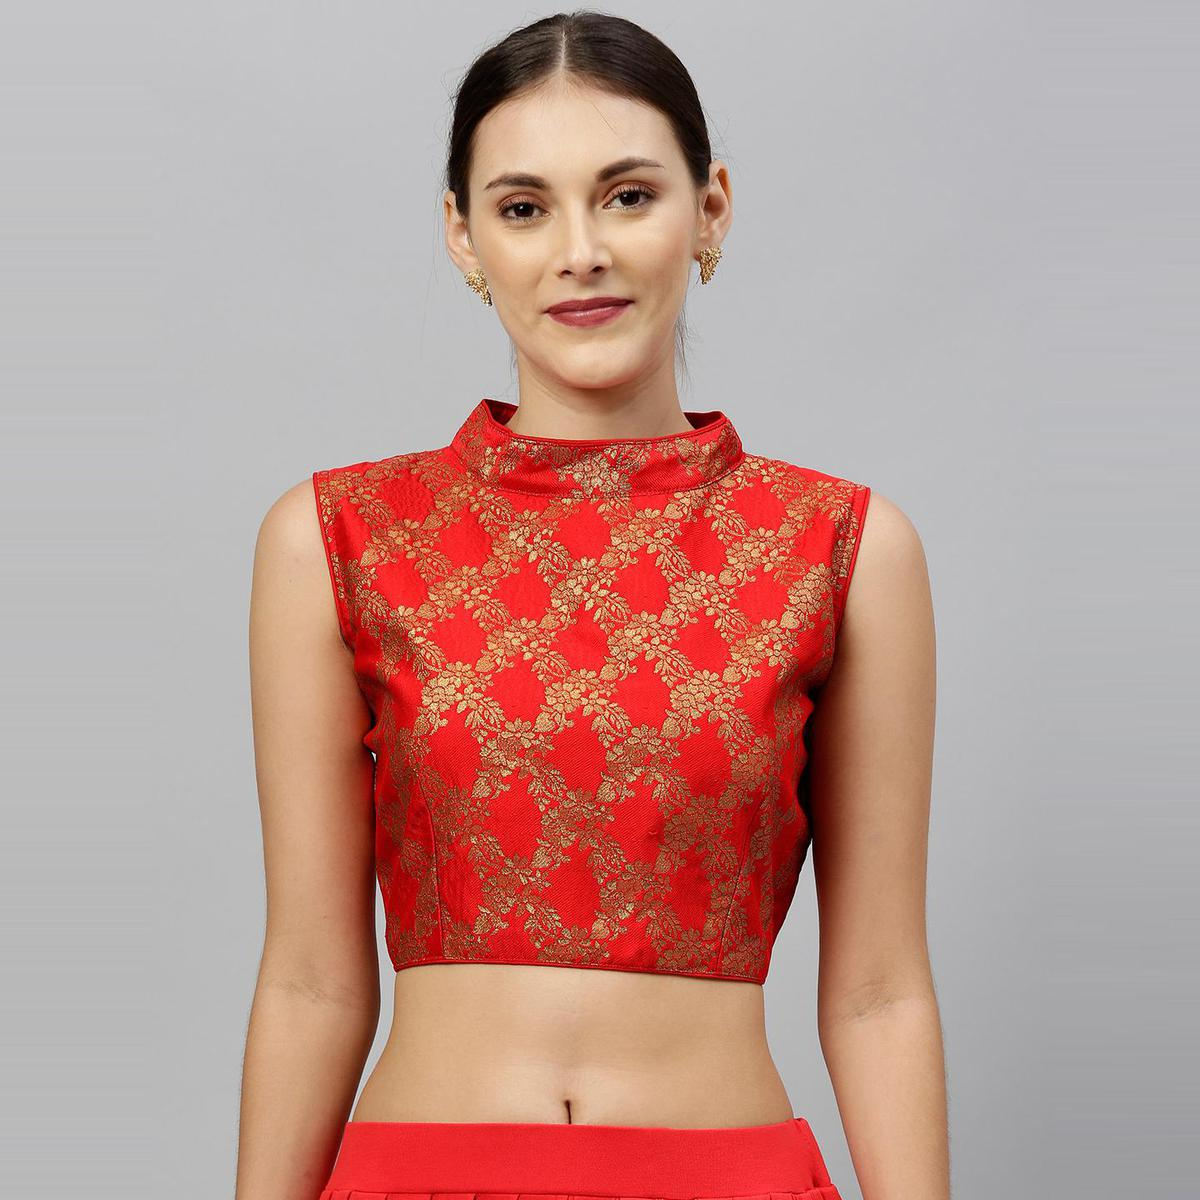 Amrutam Fab - Women's Red Brocade Blouse With Collar Neck